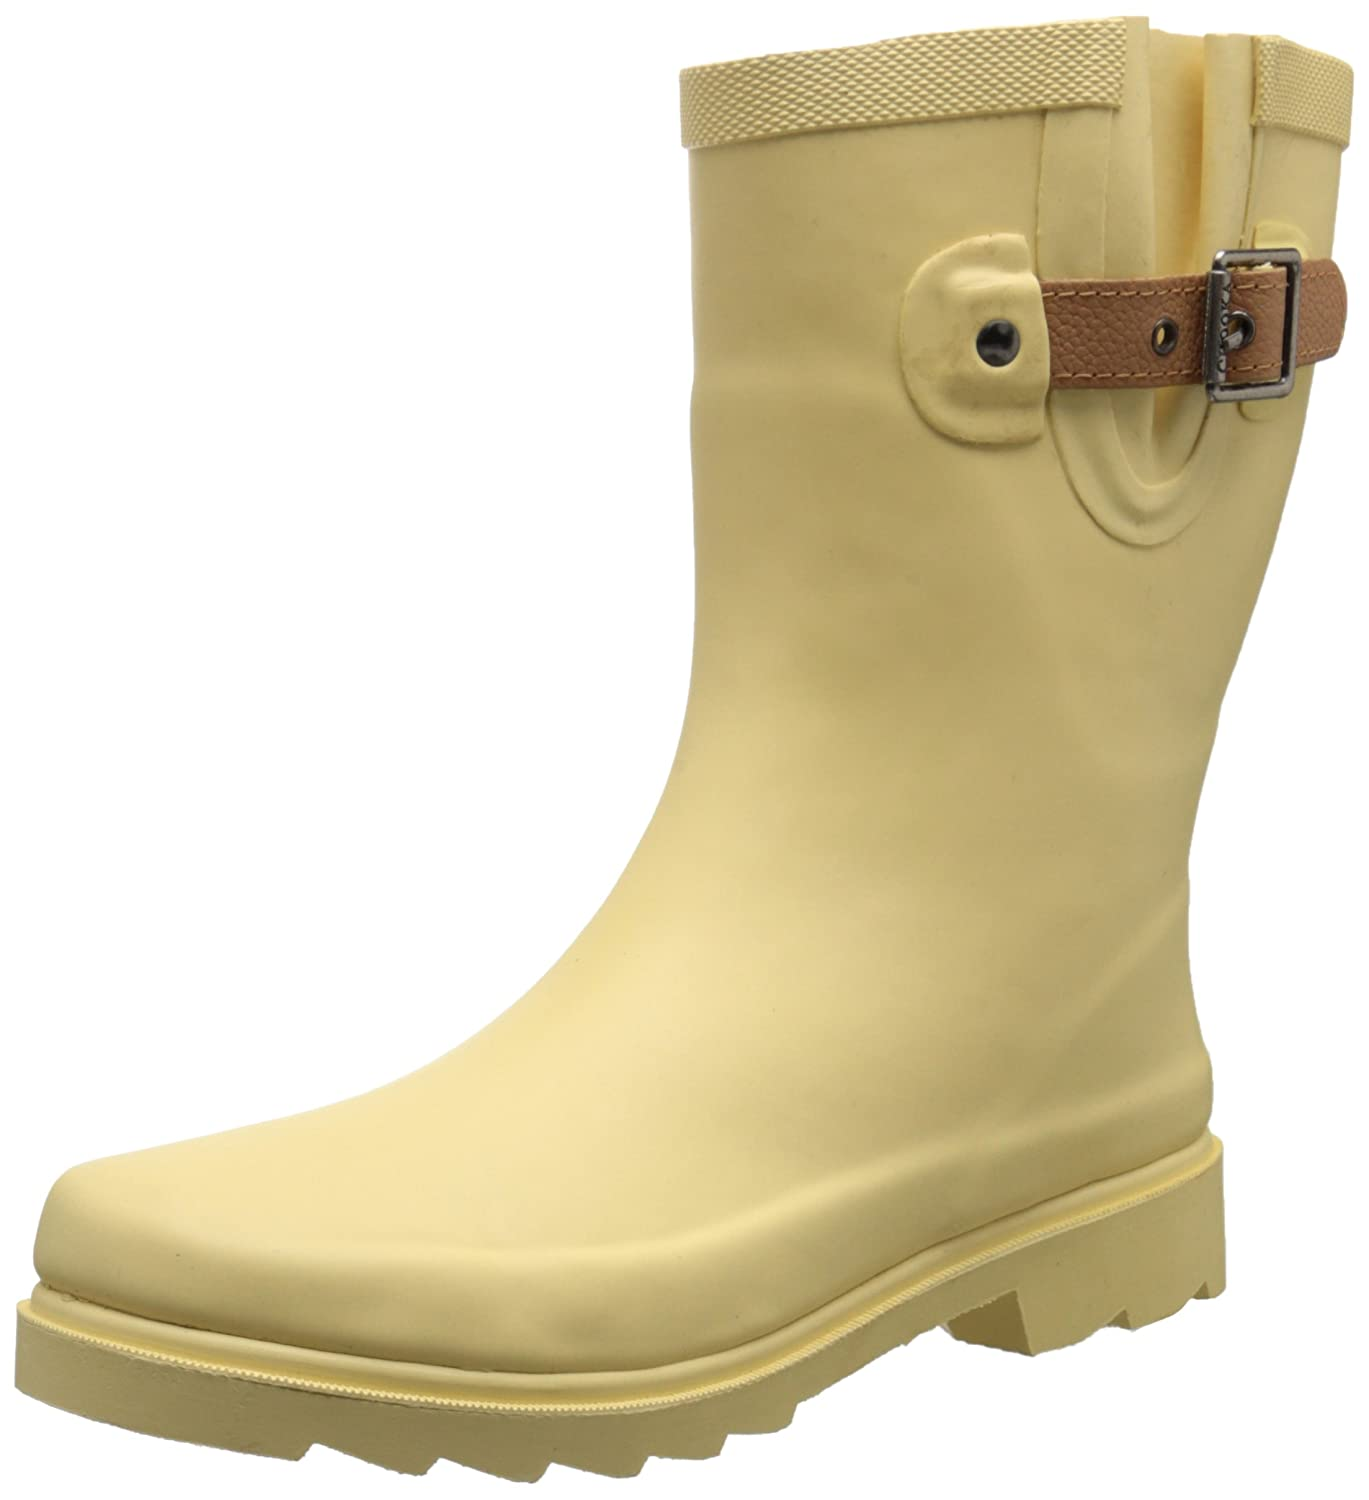 Chooka Women's Mid-Height Rain Boot B013PHHZZW 10 B(M) US|Sunflower